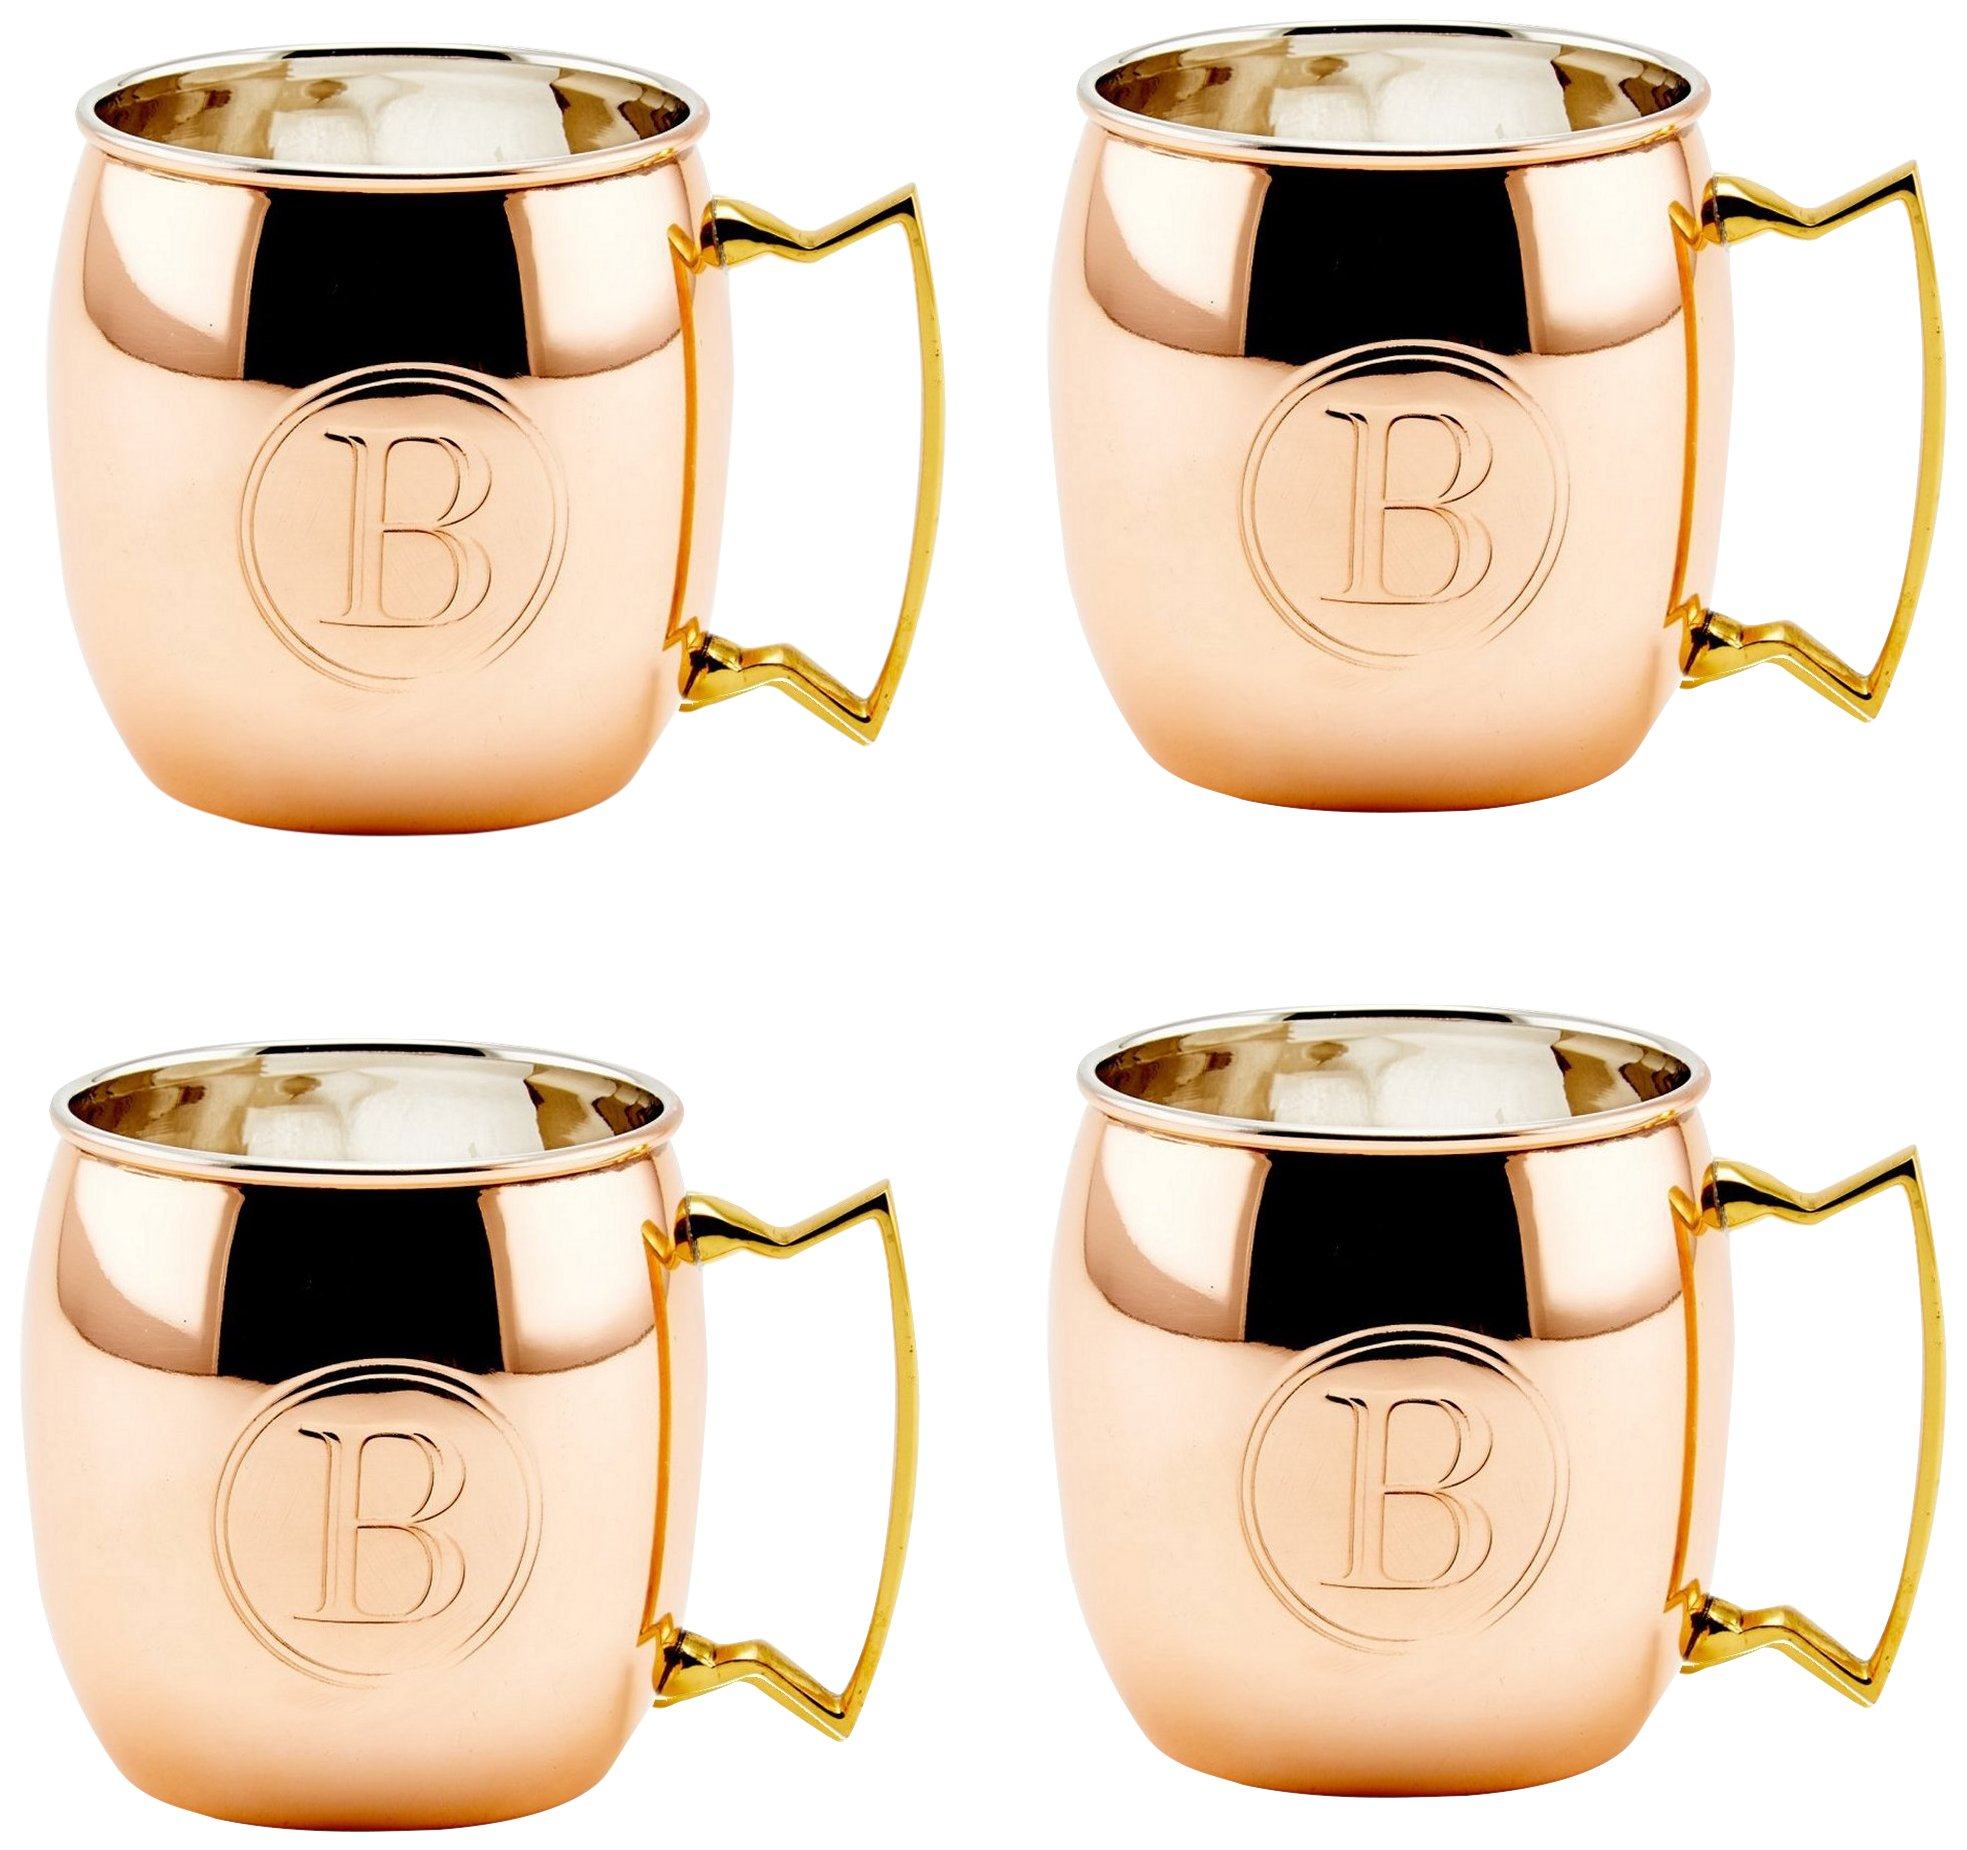 Old Dutch Solid Moscow Mule Mug, 16-Ounce, Monogrammed B, Copper, Set of 4